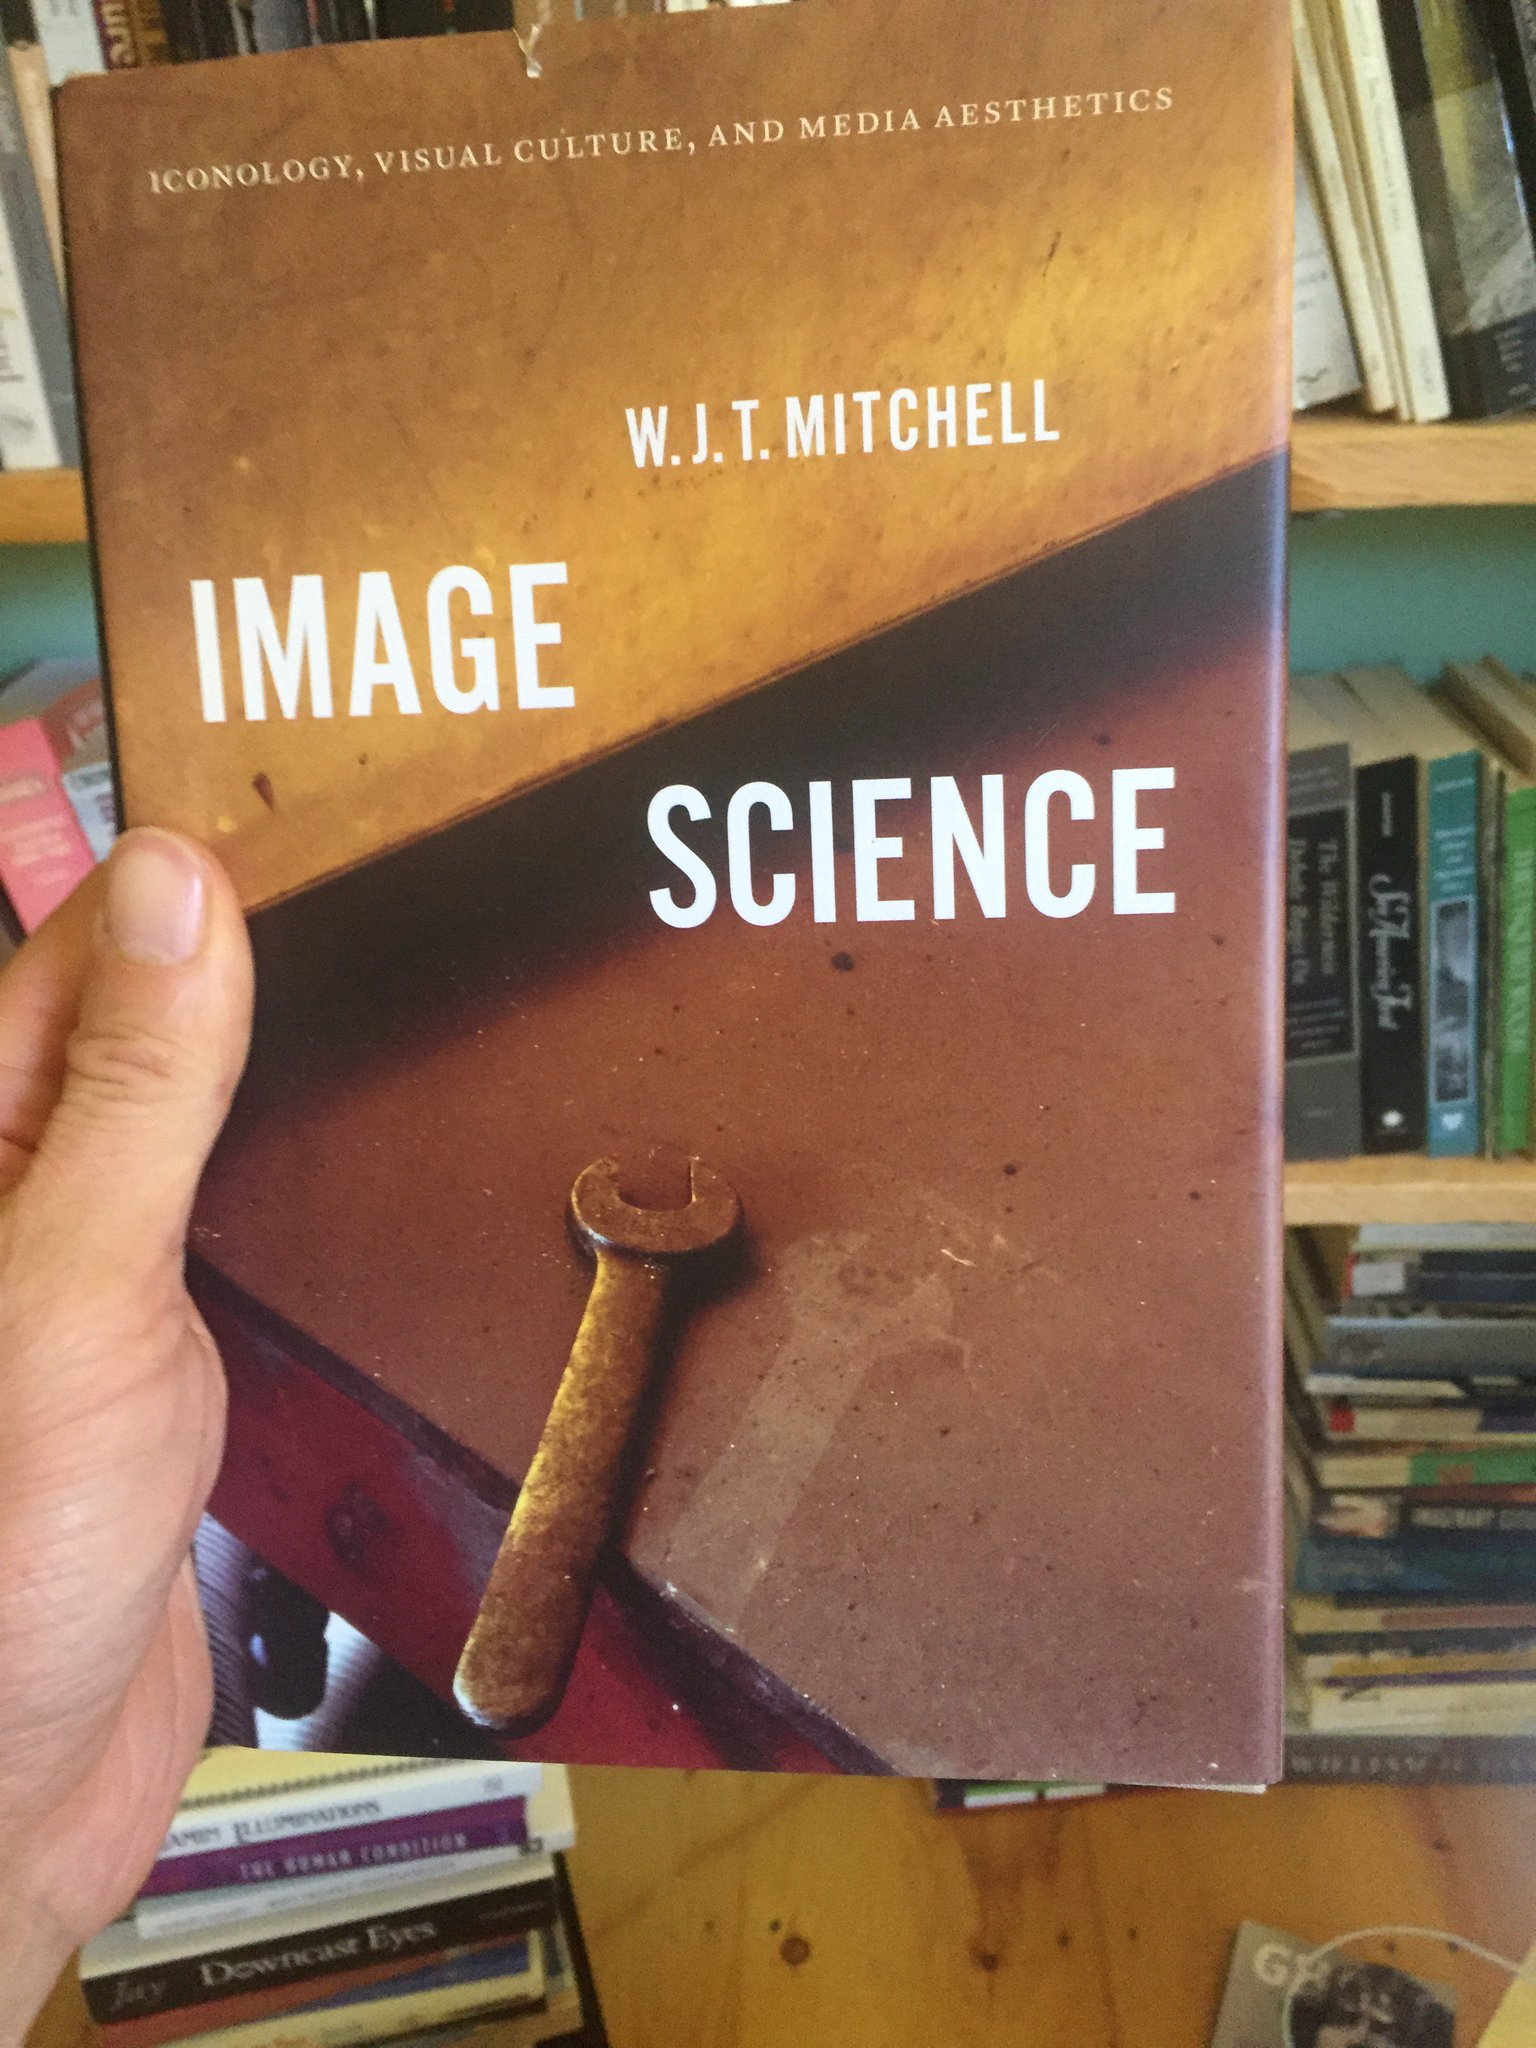 God, I love writing about #photography and #visualculture with a pile of WJT Mitchell books by my side. Psyched to finally be digging into this: https://t.co/2ppHYuatoX